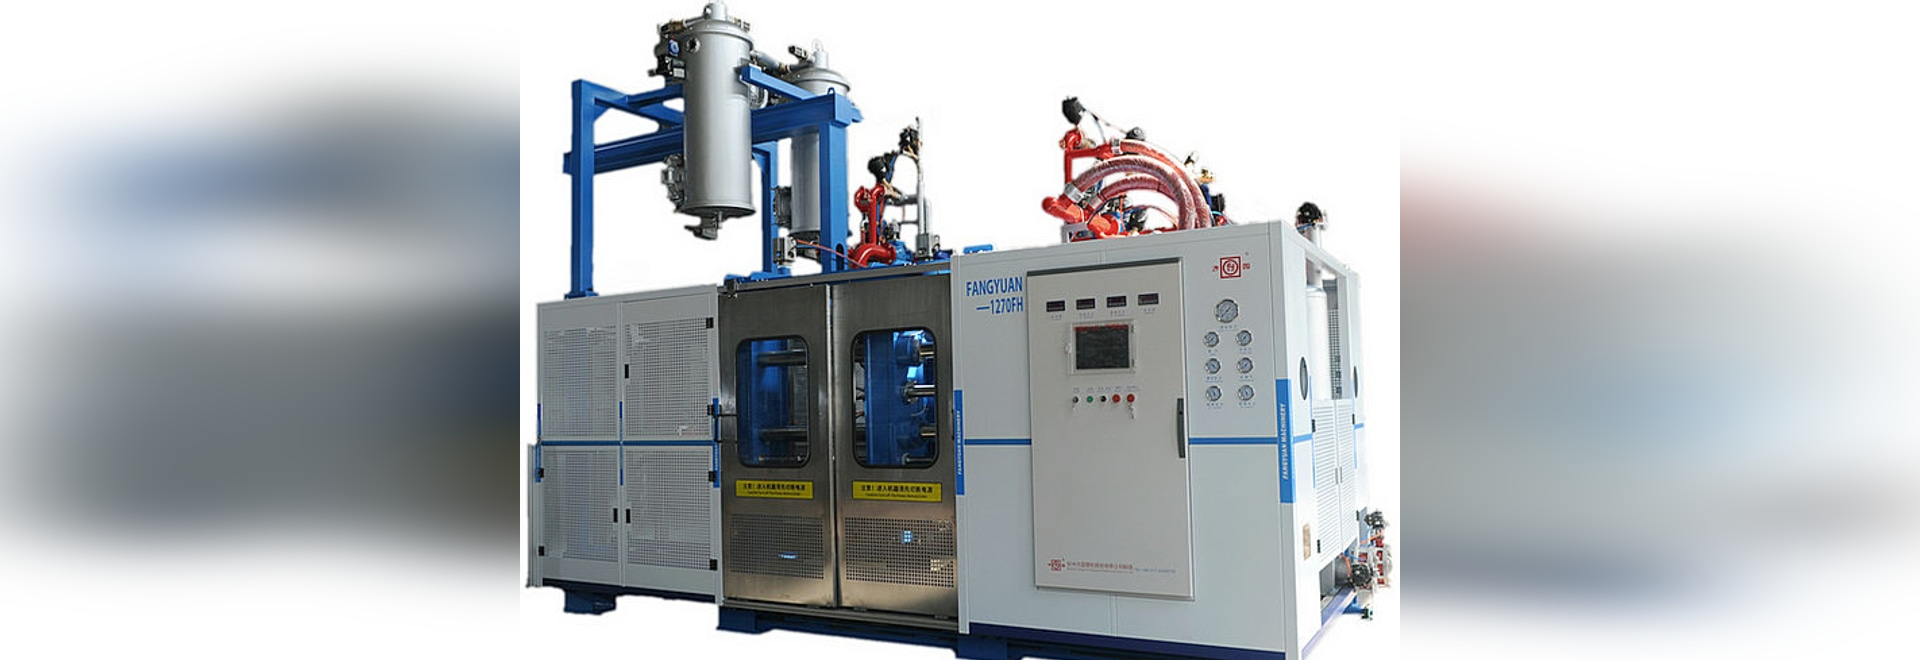 Fangyuan EPS shape molding machine / high-efficiency / automatic / with vacuum cycle